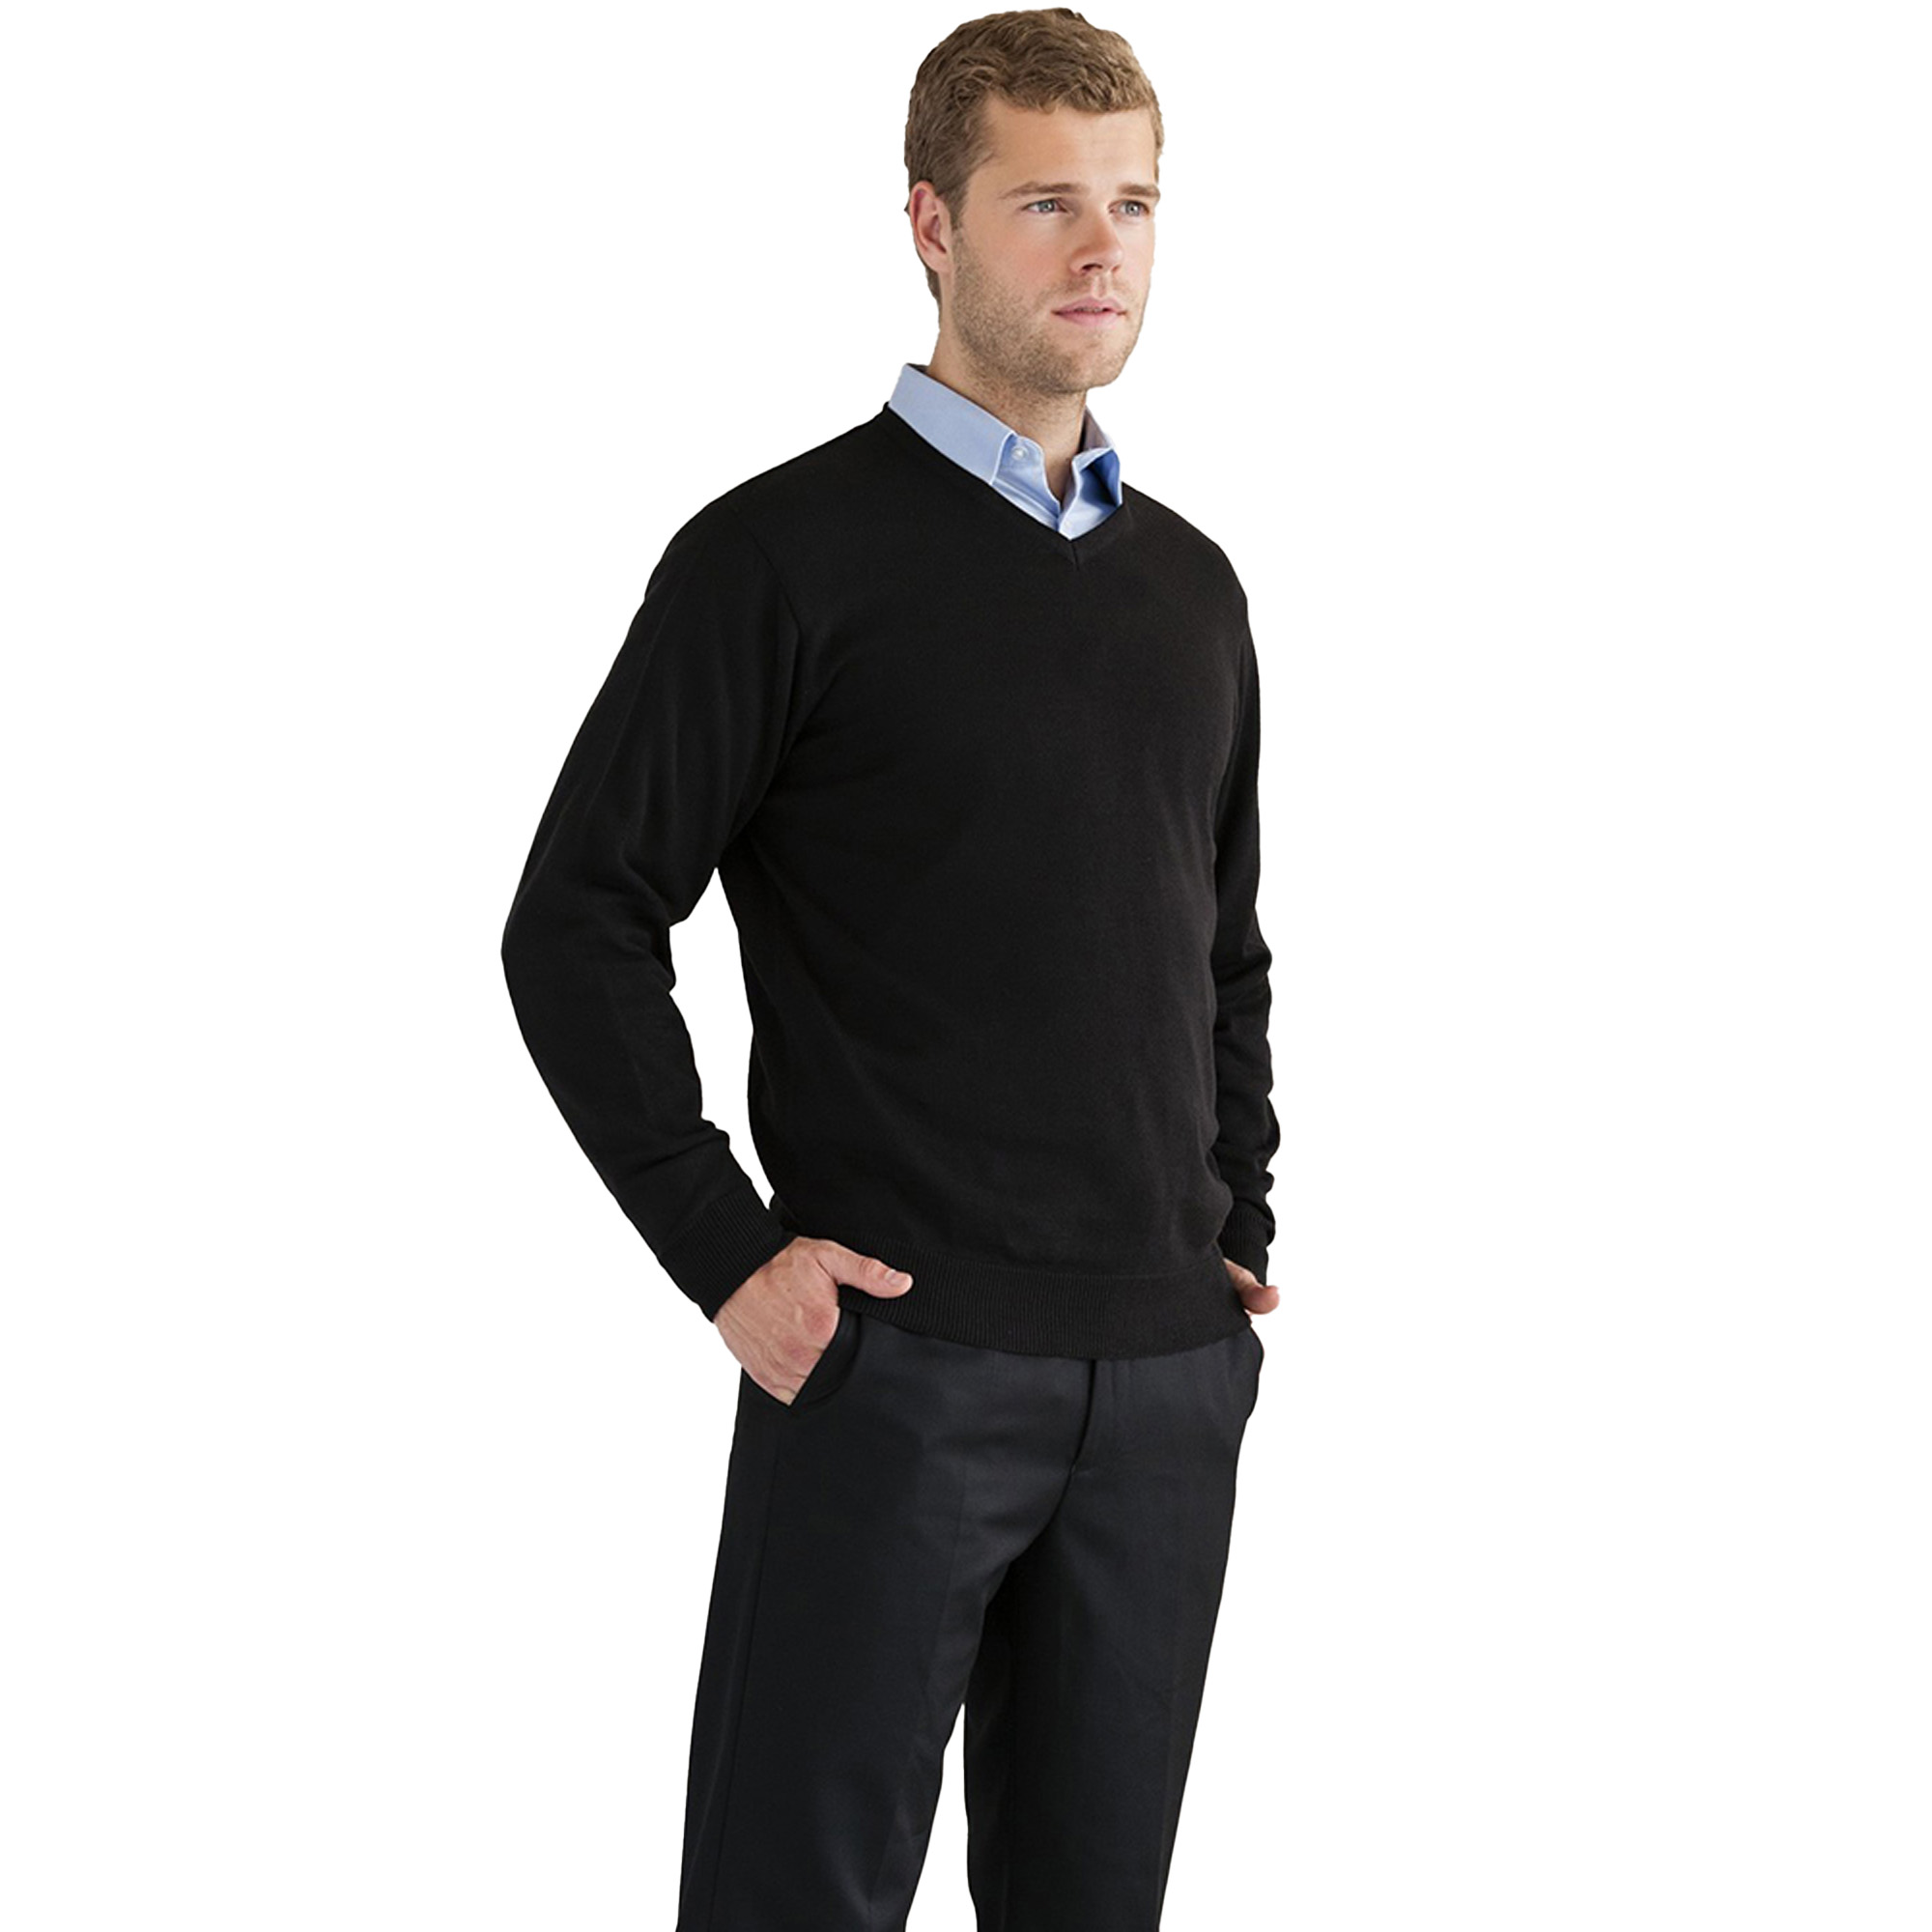 miniature 15 - Russell Collection - Pullover à col en V - Homme (XS-4XL) 2 couleurs (BC1012)